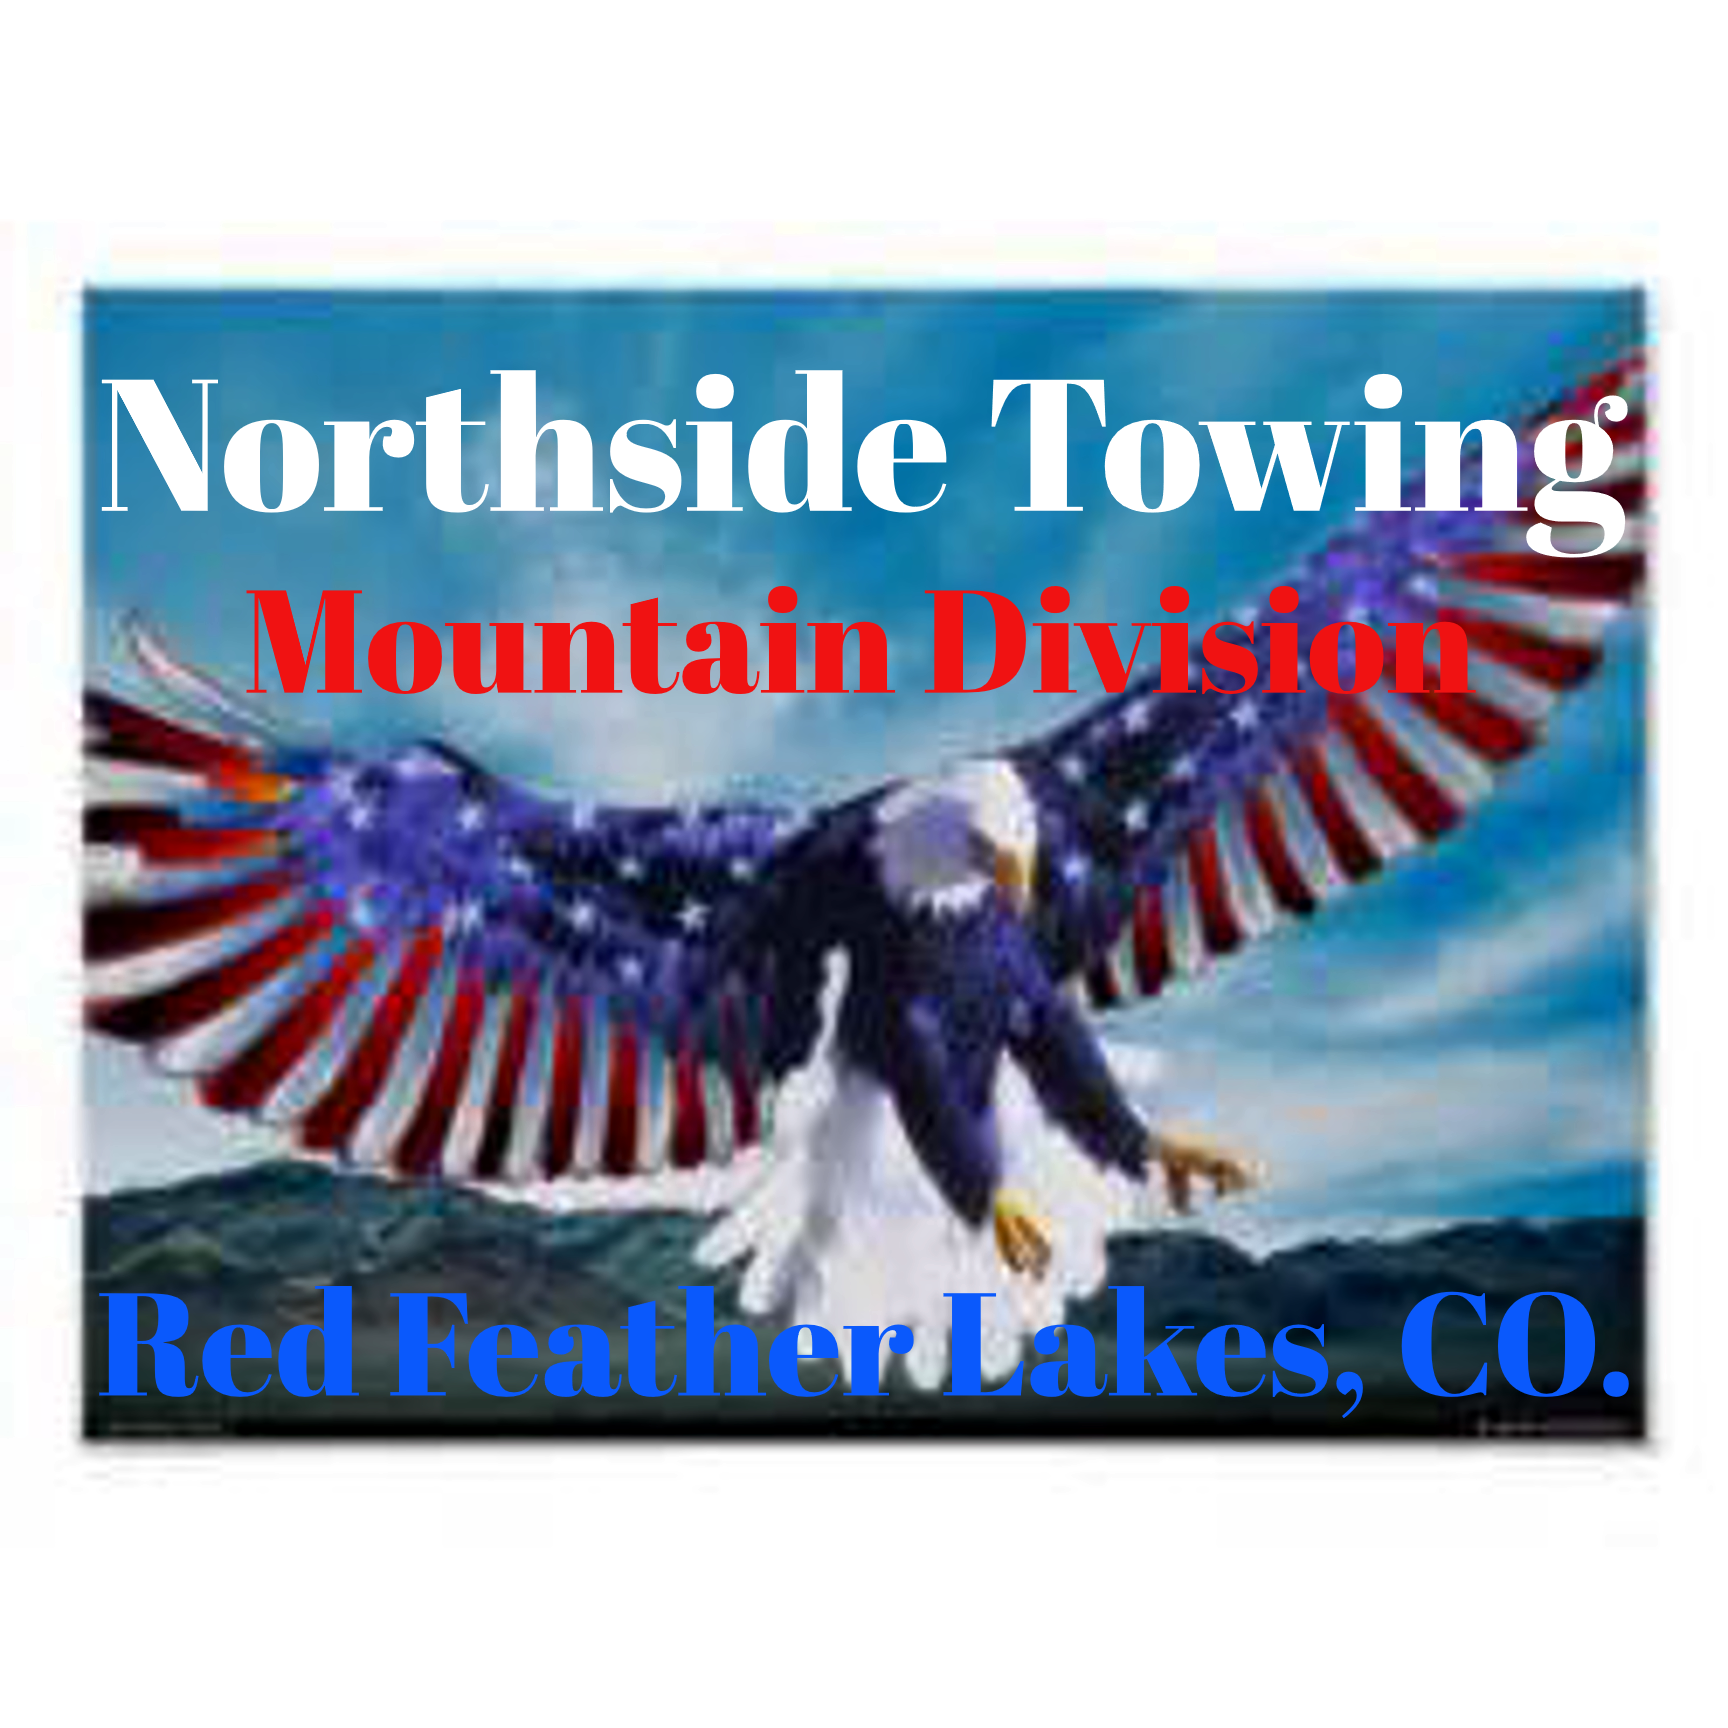 Northside Towing- Red Feather Lakes image 0